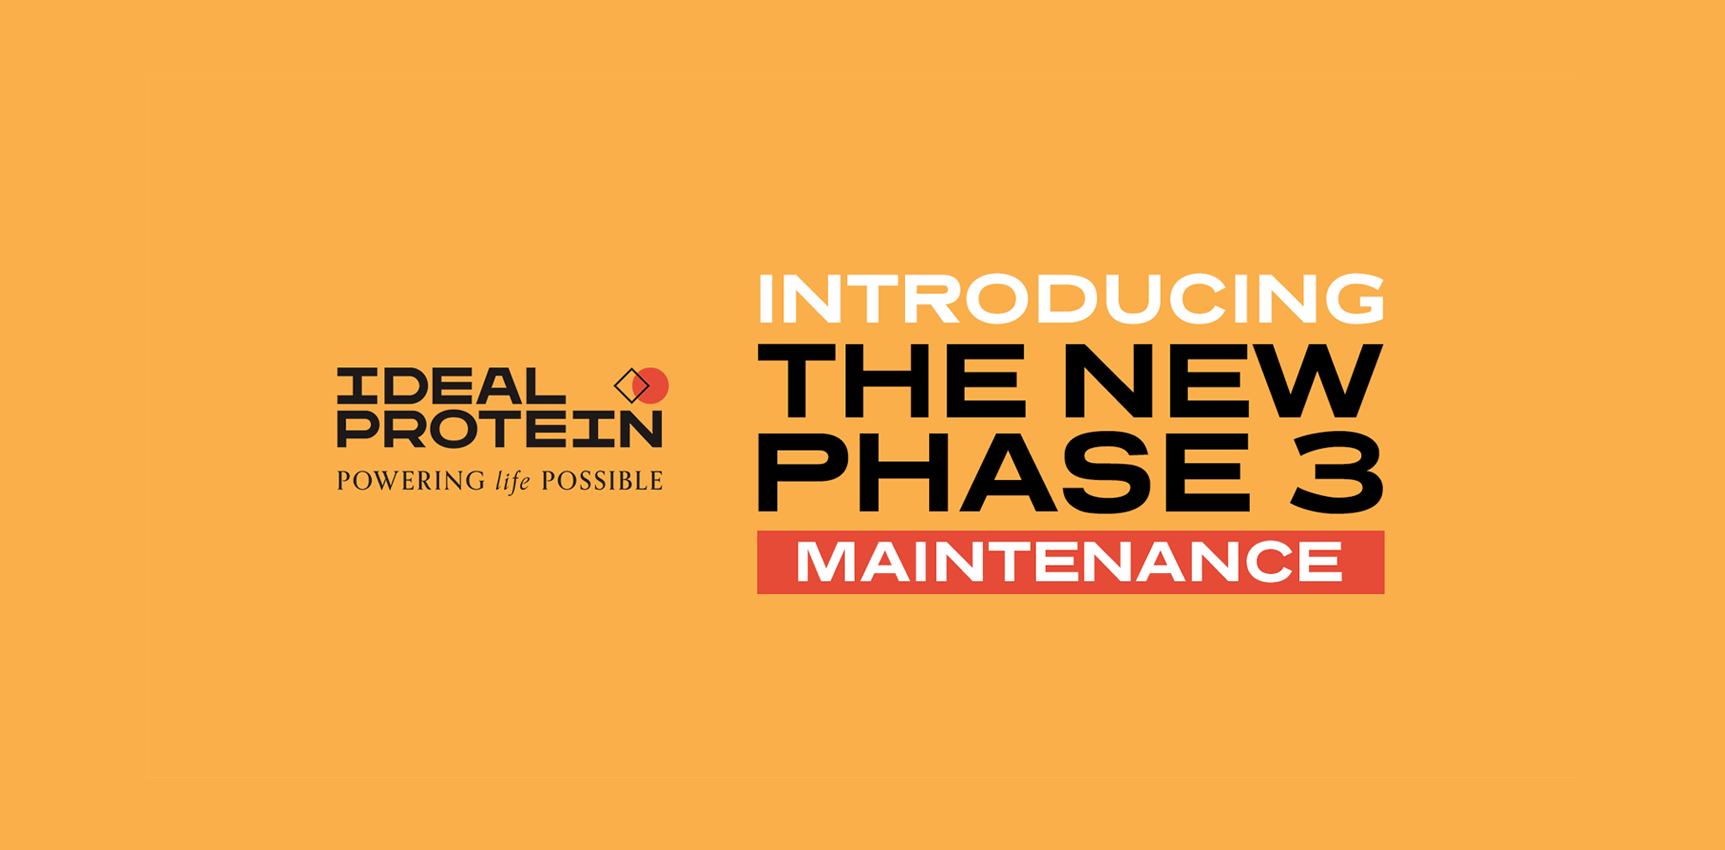 new phase 3 ideal protein